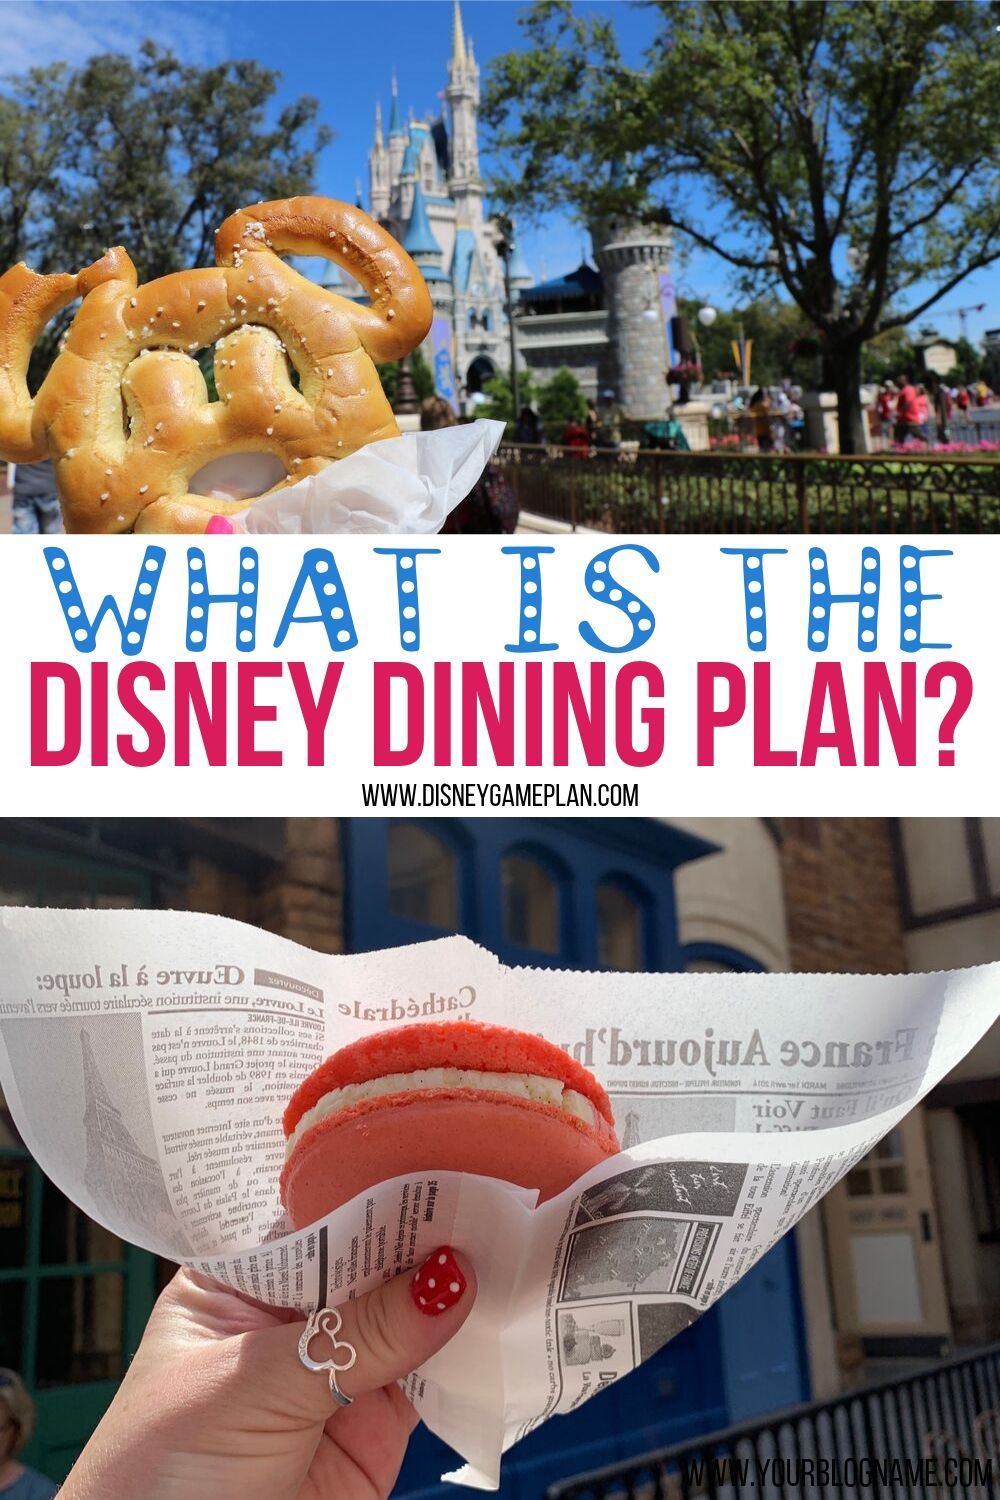 Enjoy Delicious Pre-Paid Meals, Mobile Ordering and Specialty Beverages Too! Here is General Information About The Disney Dining Plan, types of dining plans and whether it is worth the money. #disneydiningplan #disneytips #disneyfood